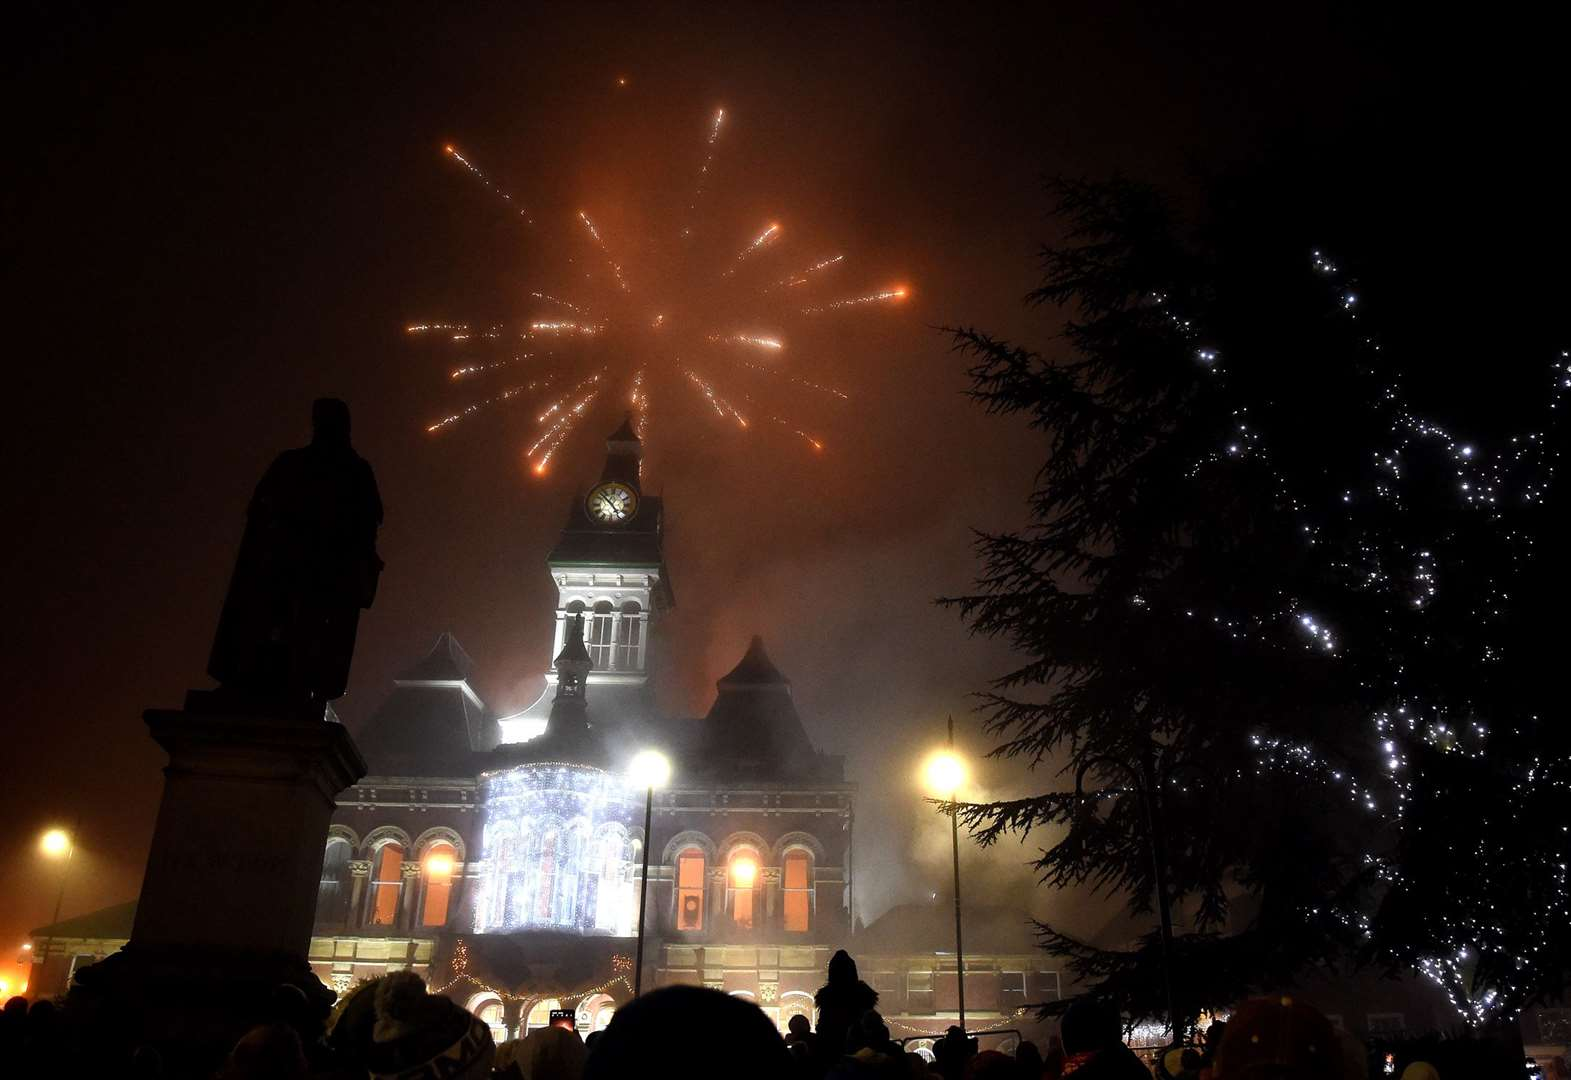 Fireworks light up the sky for spectacular finale to Christmas festivities in Grantham